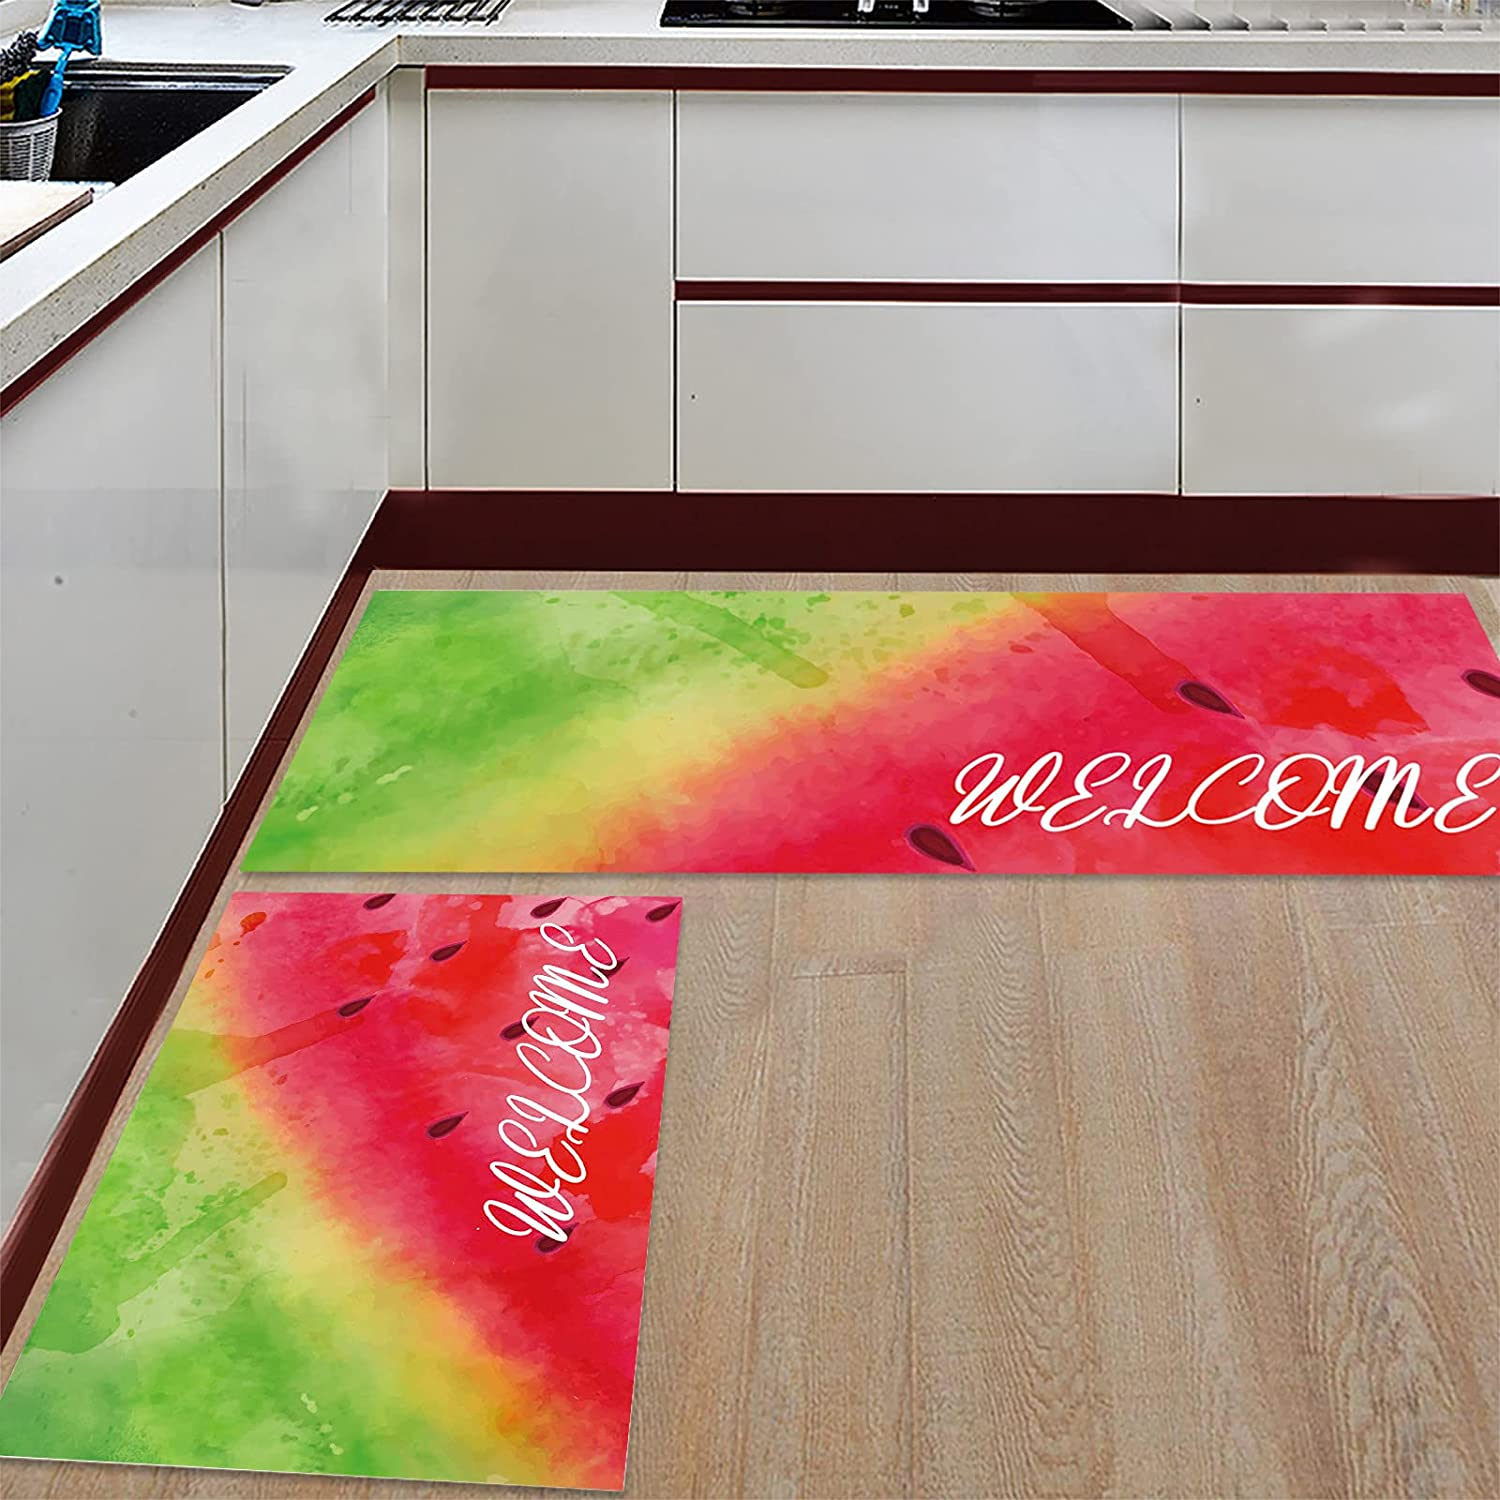 Teamery Kitchen Rugs Raleigh Mall and Mats Set Cushioned Sales of SALE items from new works Comfort 2 Runner